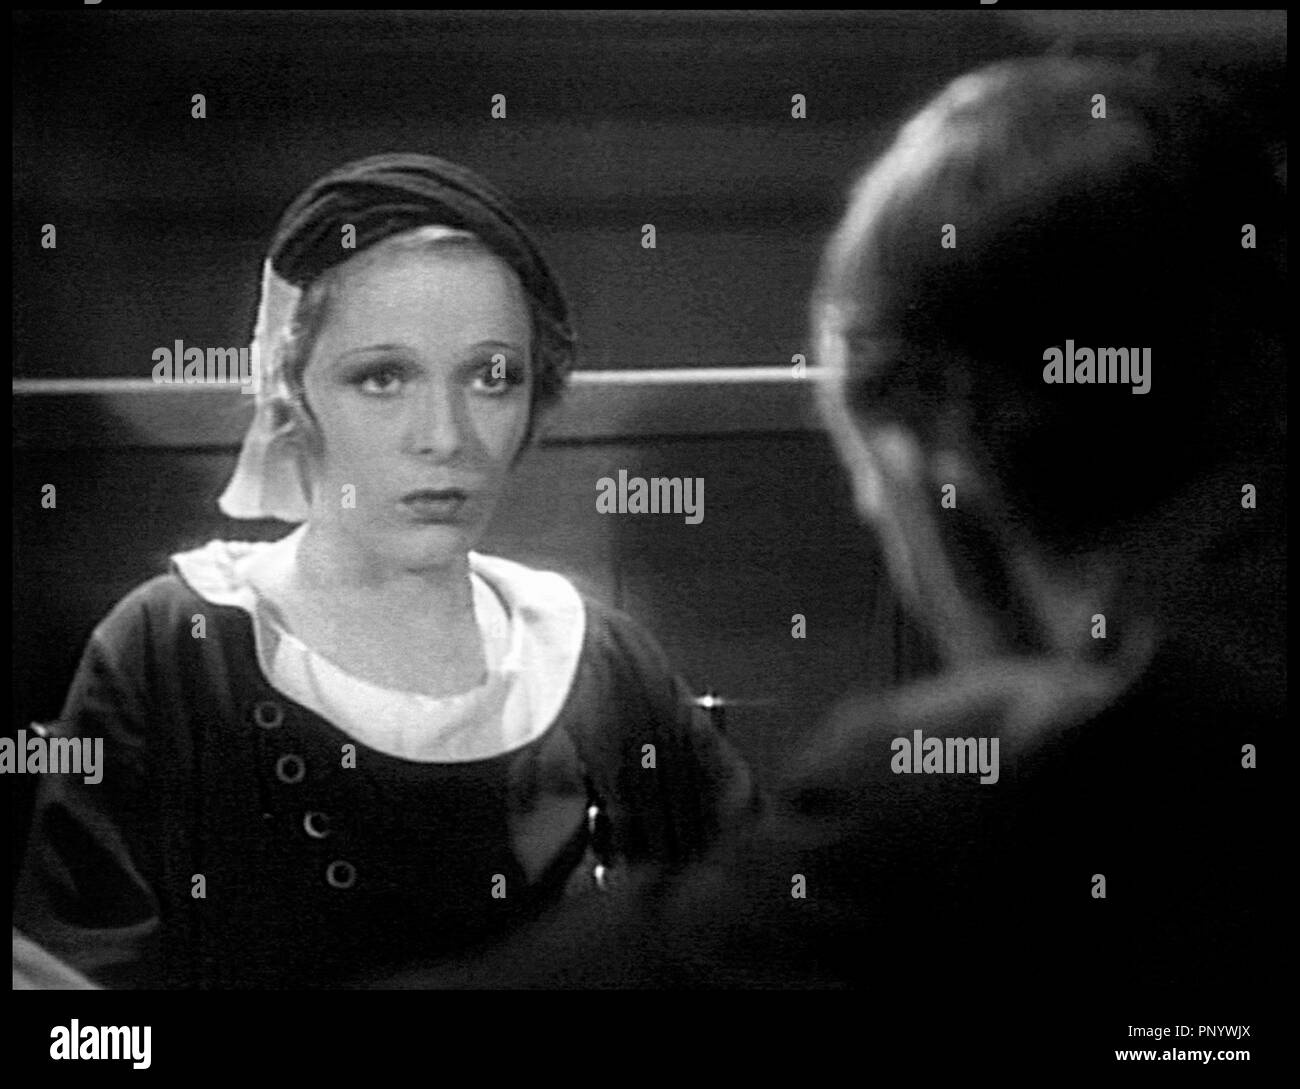 Prod DB © Warner Bros. Pictures / DR THE STAR WITNESS de William A. Wellman 1931 USA avec Sally Blane - Stock Image